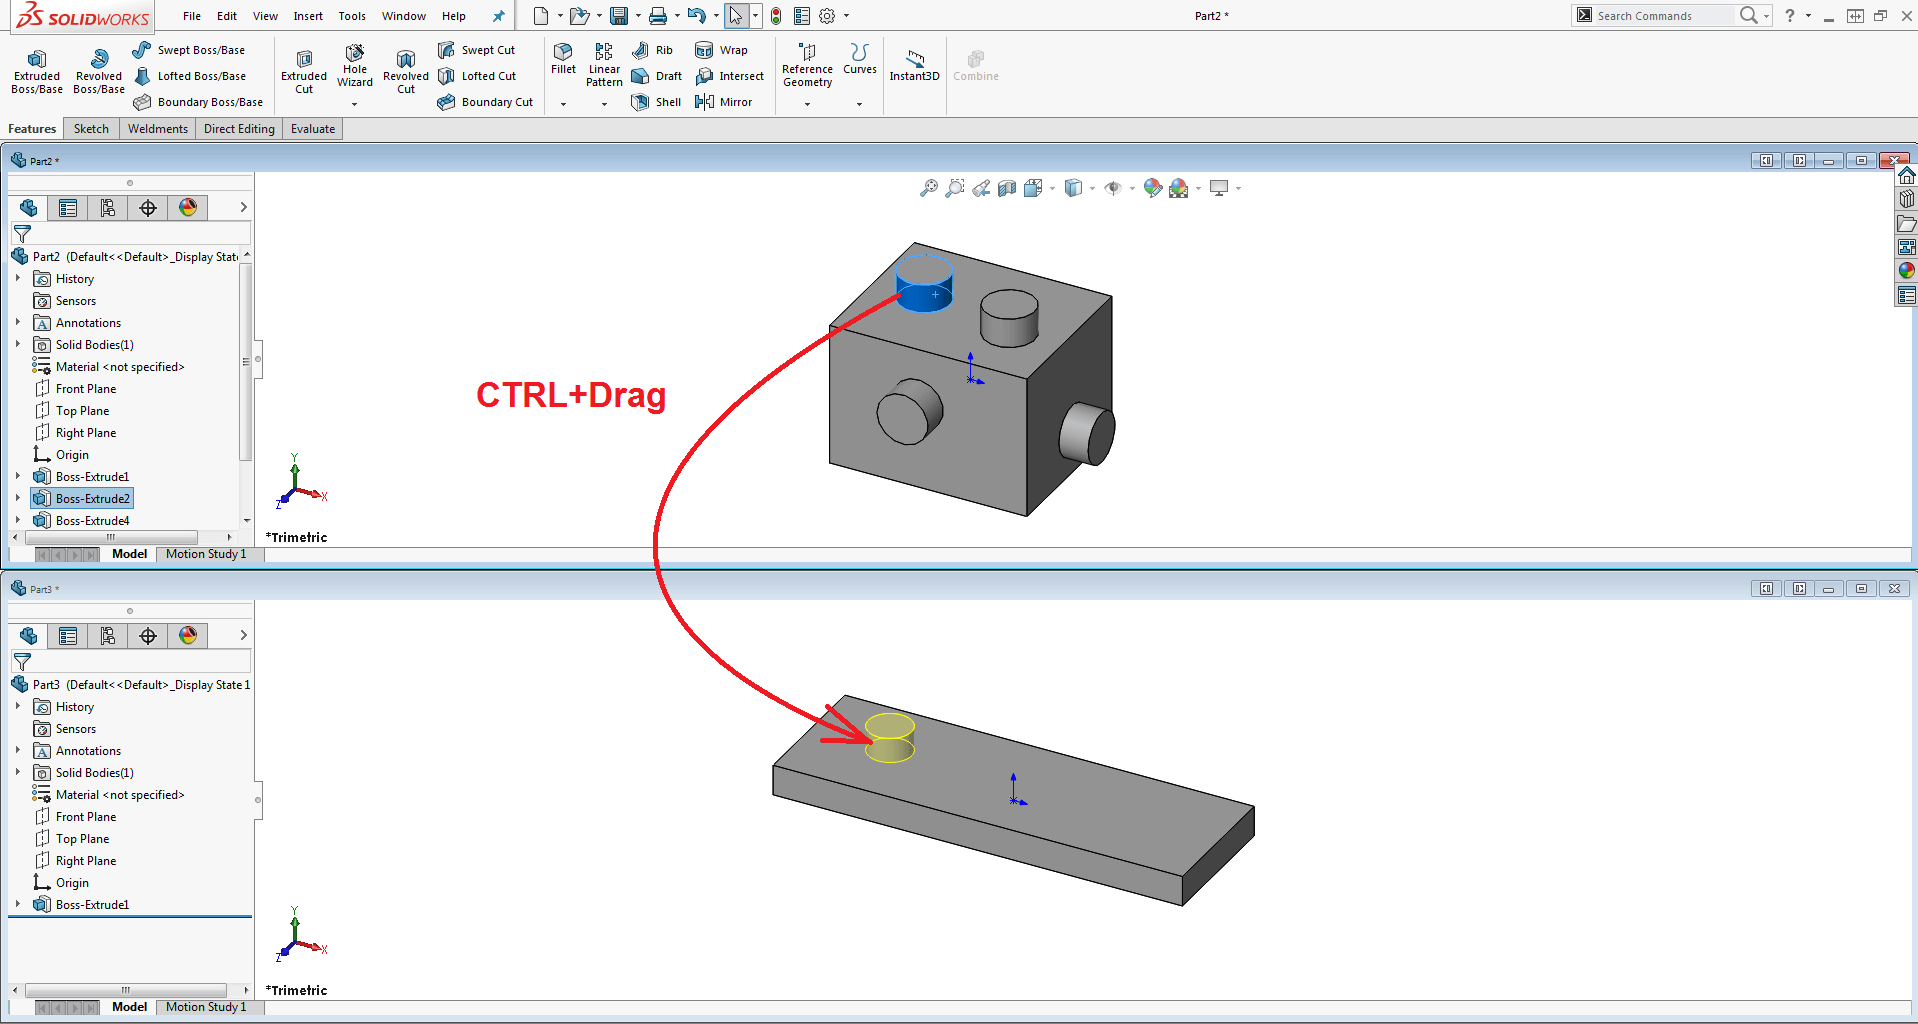 Copying SOLIDWORKS features from one document to another